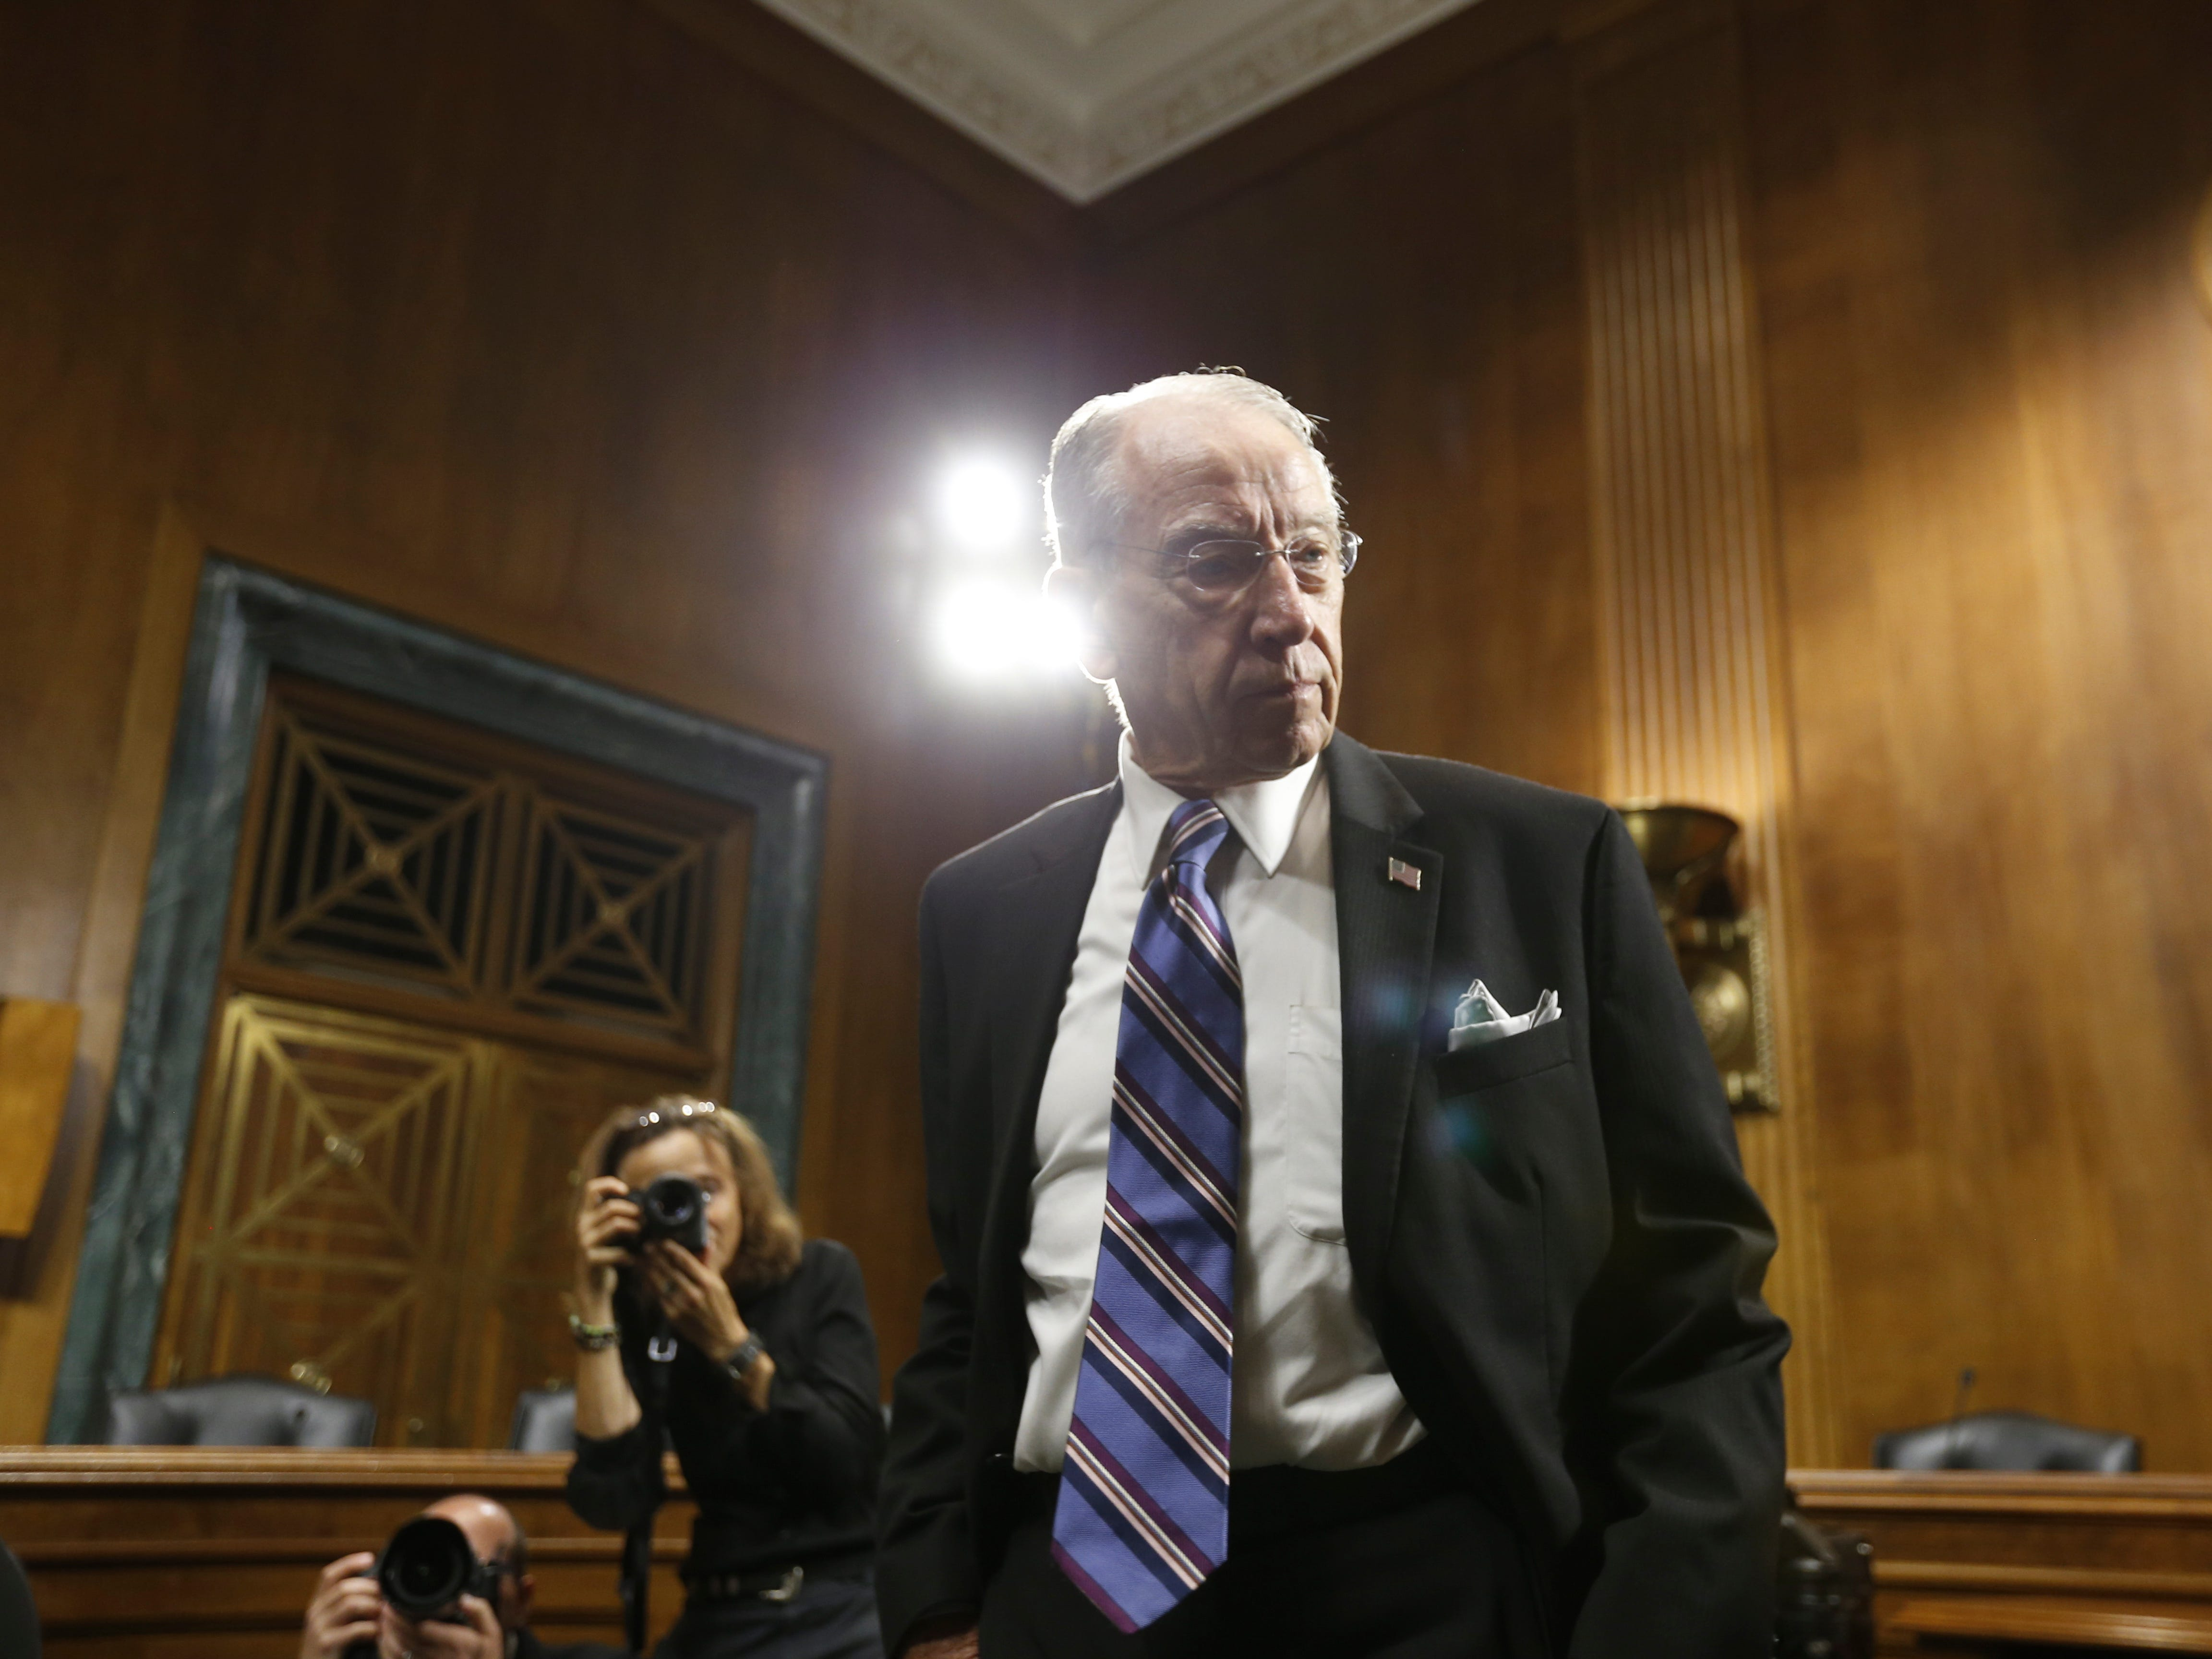 epa07050980 Senator Chuck Grassley checks outs the media area before the Senate Judiciary Committee hearing on the nomination of Brett Kavanaugh to be an associate justice of the Supreme Court of the United States, on Capitol Hill in Washington, DC, USA, 27 September 2018. US President Donald J. Trump's nominee to be a US Supreme Court associate justice Brett Kavanaugh is in a tumultuous confirmation process as multiple women have accused Kavanaugh of sexual misconduct.  EPA-EFE/MICHAEL REYNOLDS ORG XMIT: MRX03